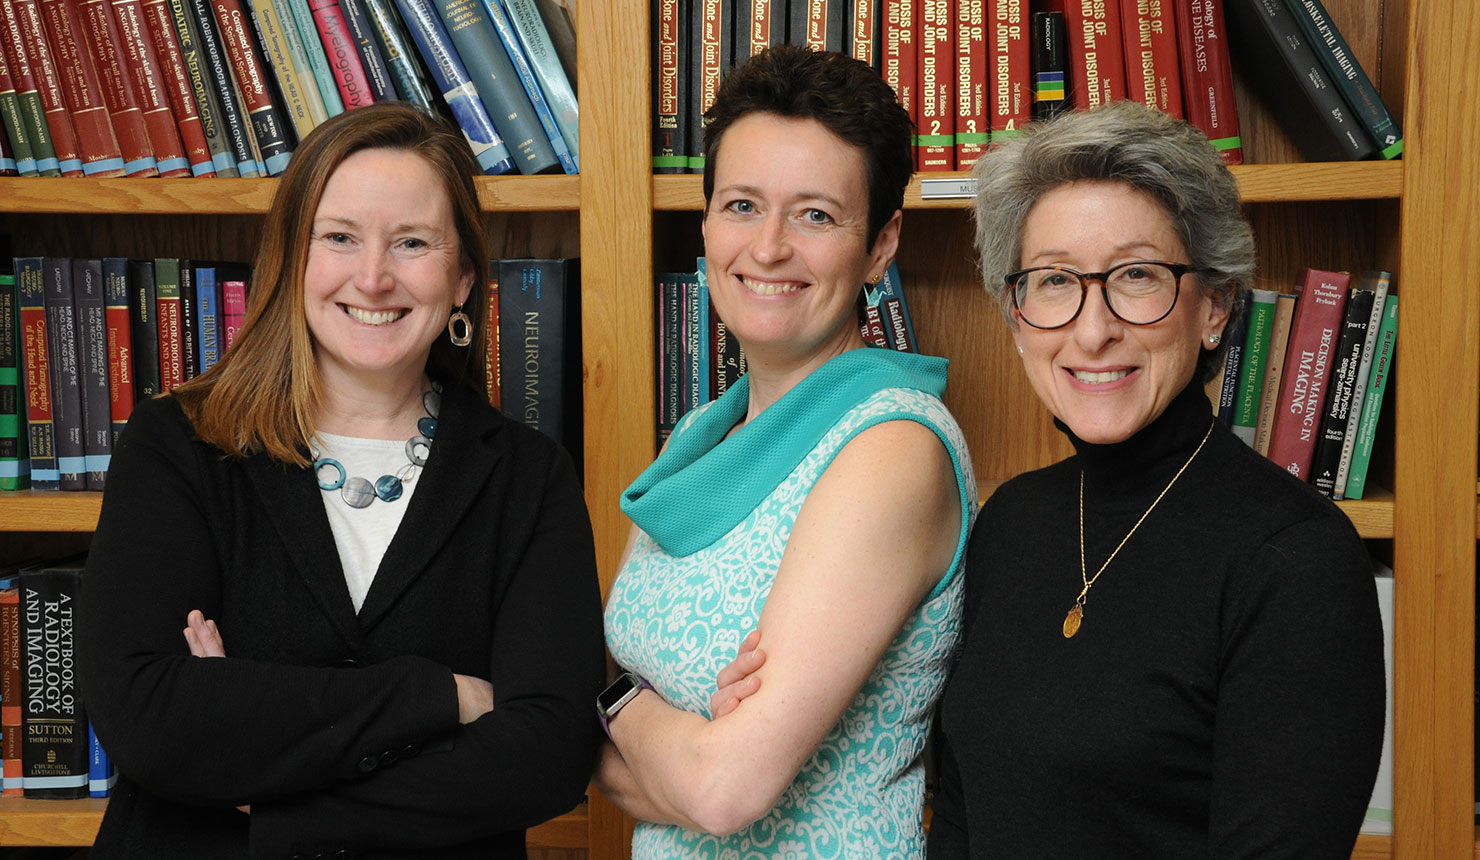 Nancy McNulty (left), Petra Lewis (center), and Jocelyn Chertoff (right) all received awards from the Association of University Radiologists for their contributions to the field of radiology. (Photo by John Gilbert Fox)